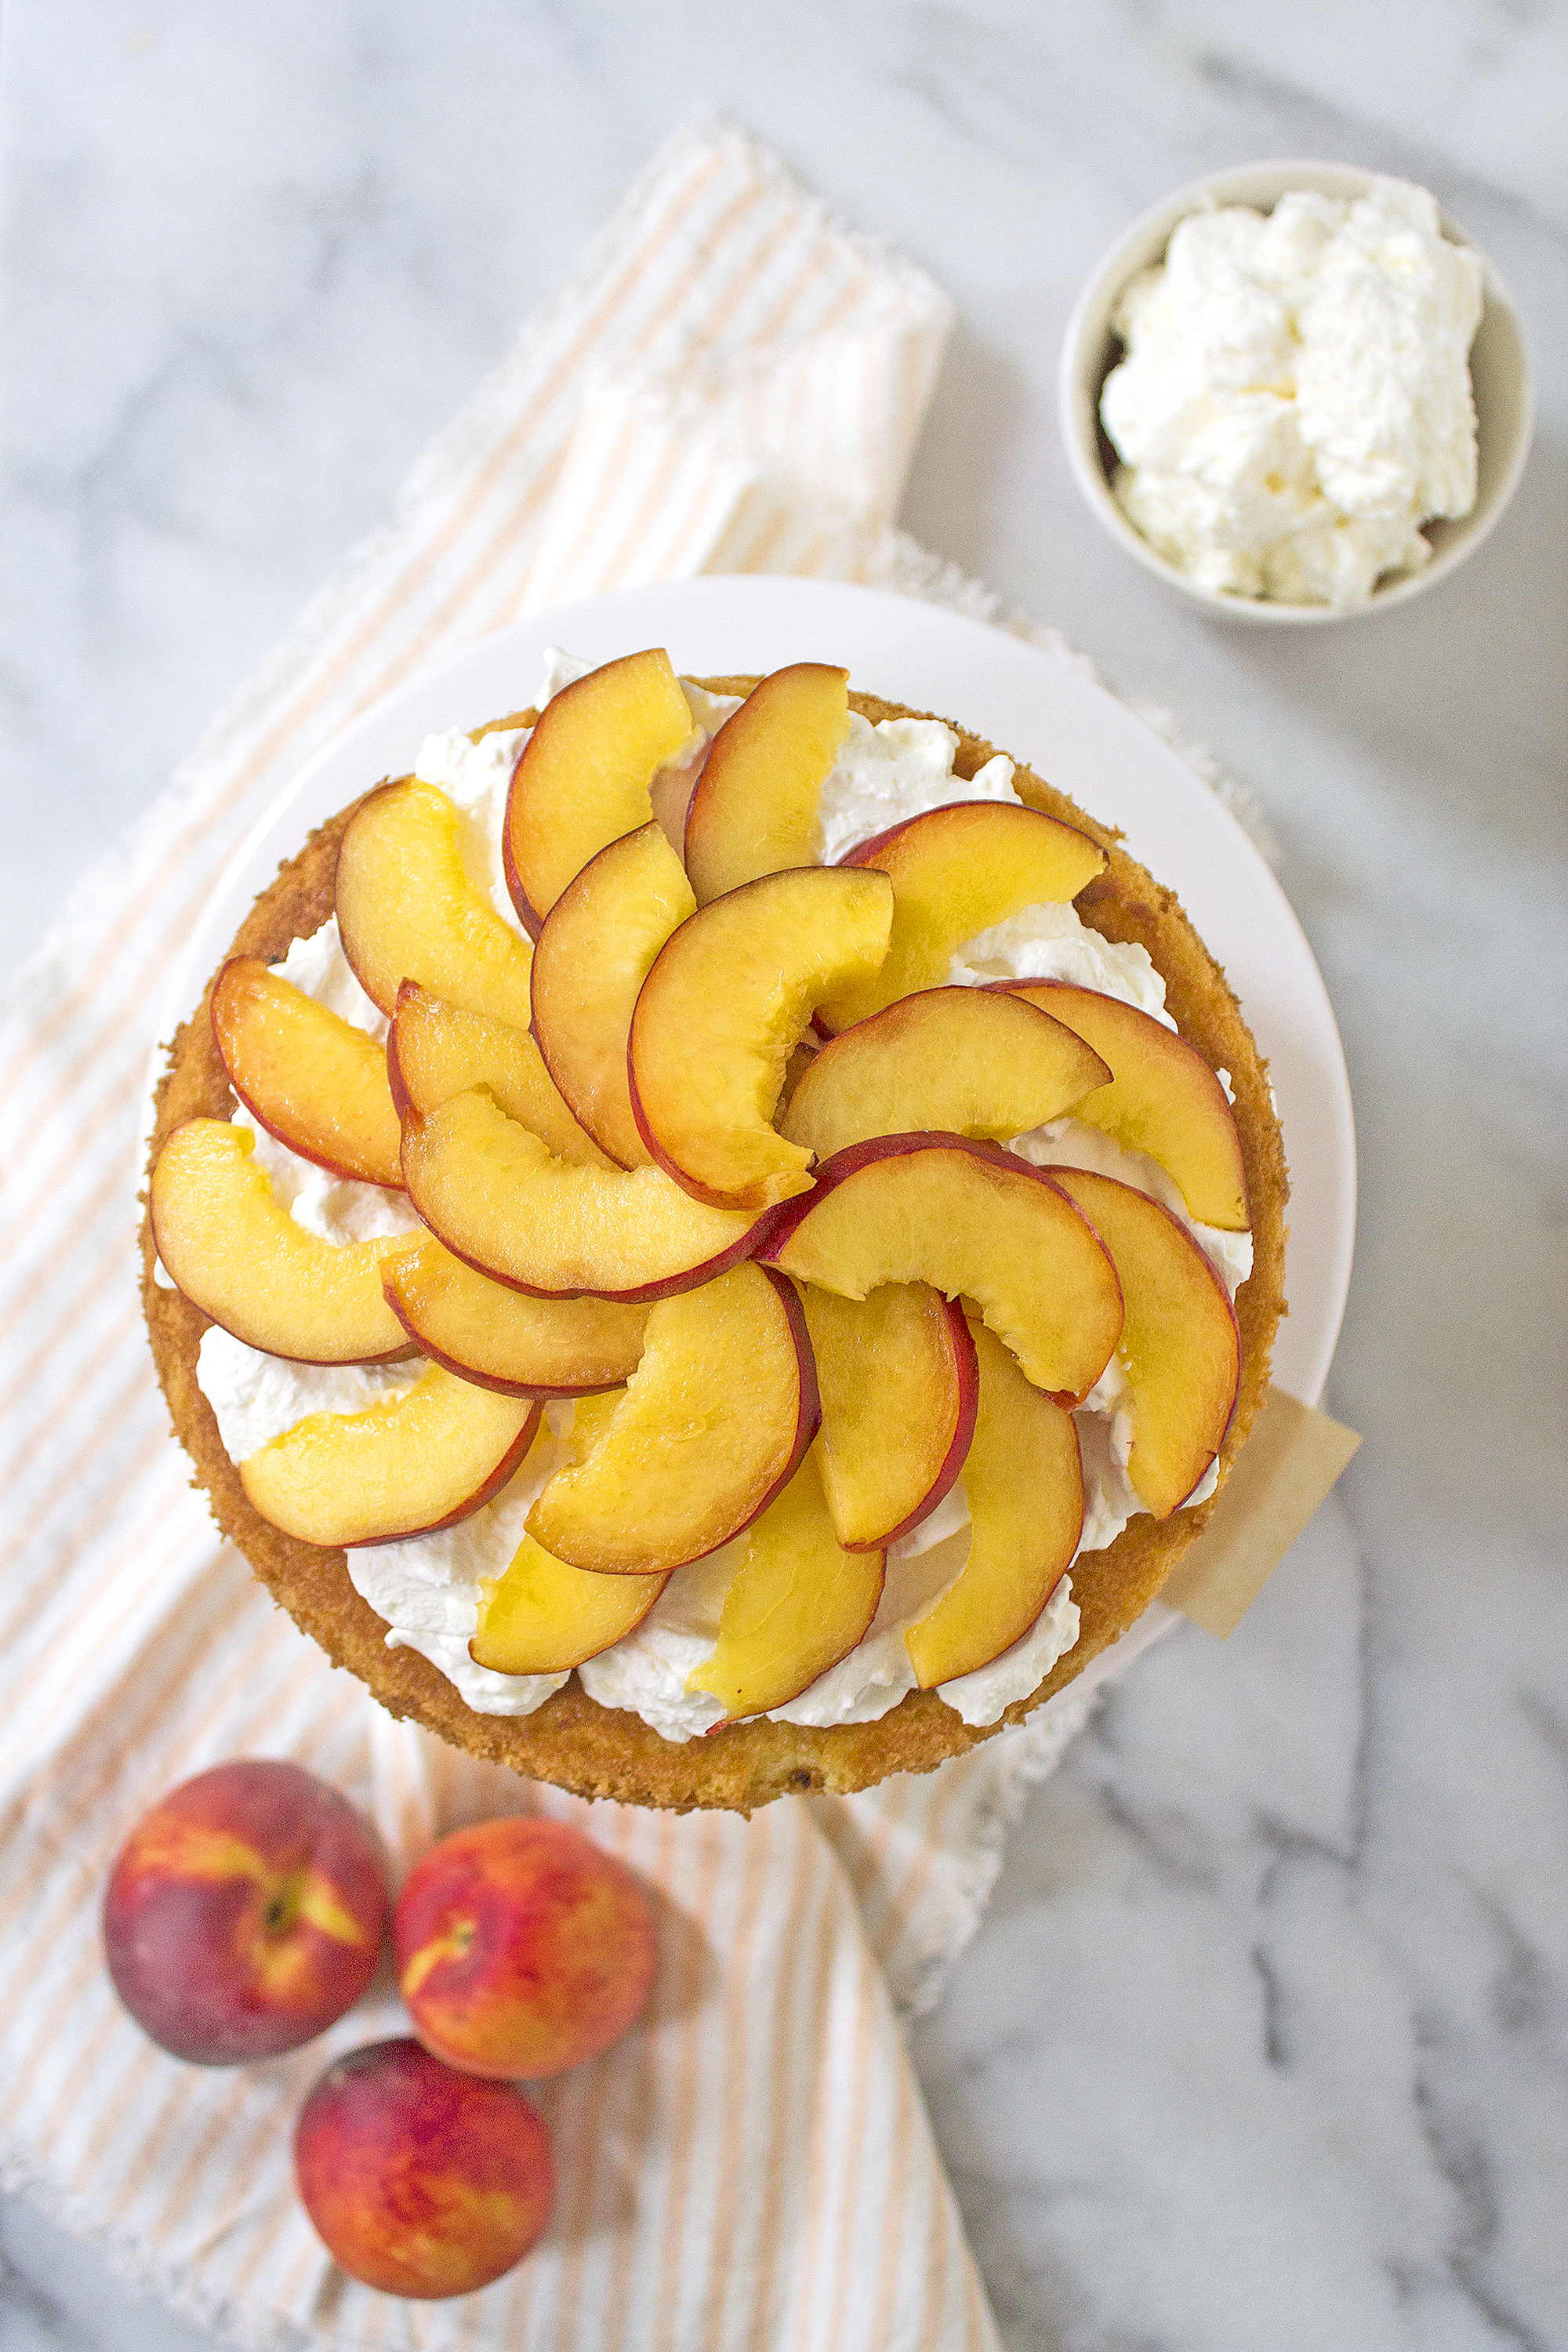 The perfect summer shortcake topped with fresh peaches and homemade whipped cream. Get the recipe: unusuallylovely.com